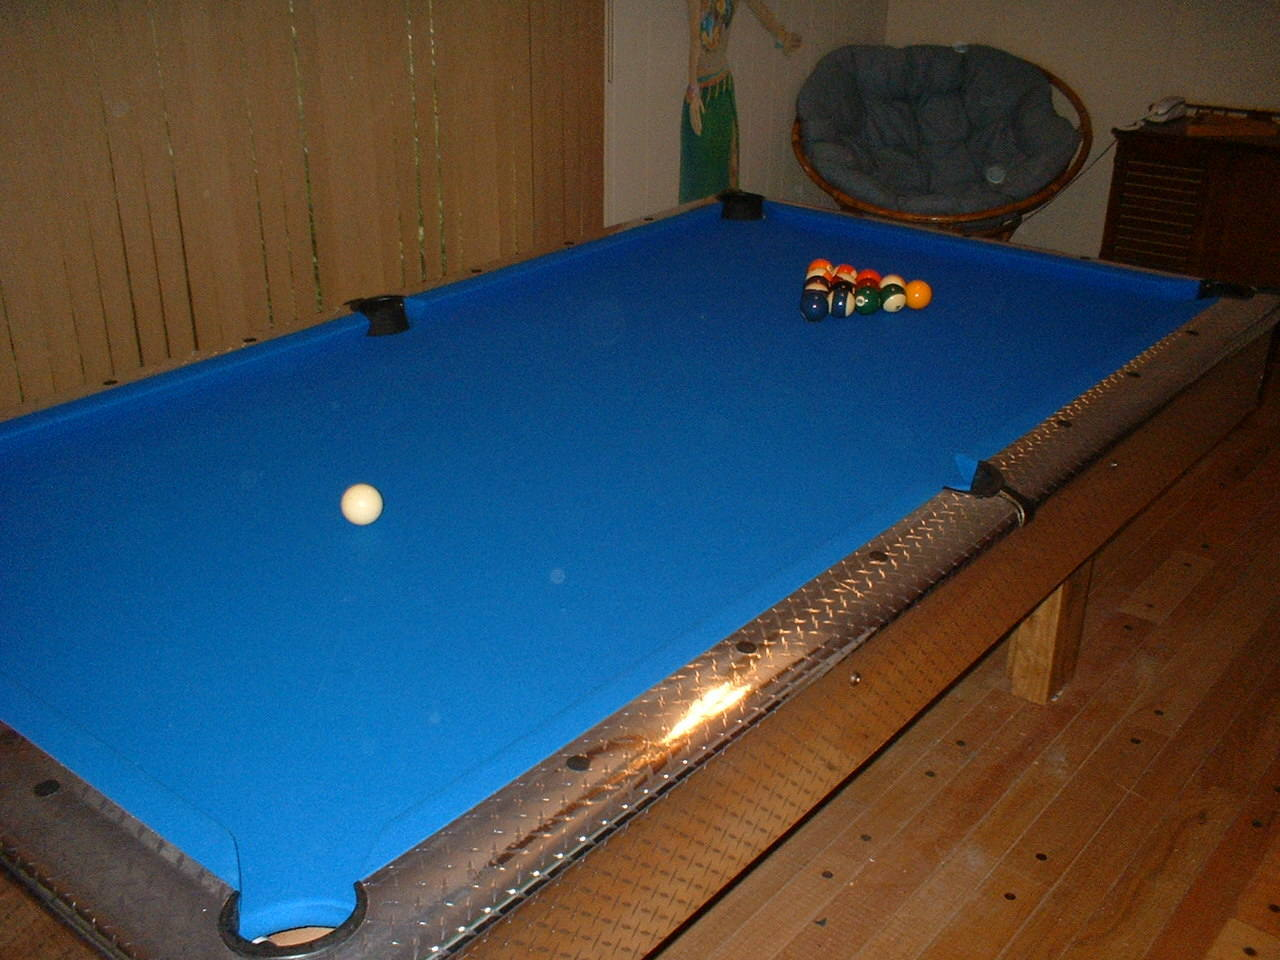 ... Decals And Stickers Diamond Plate Pool Table